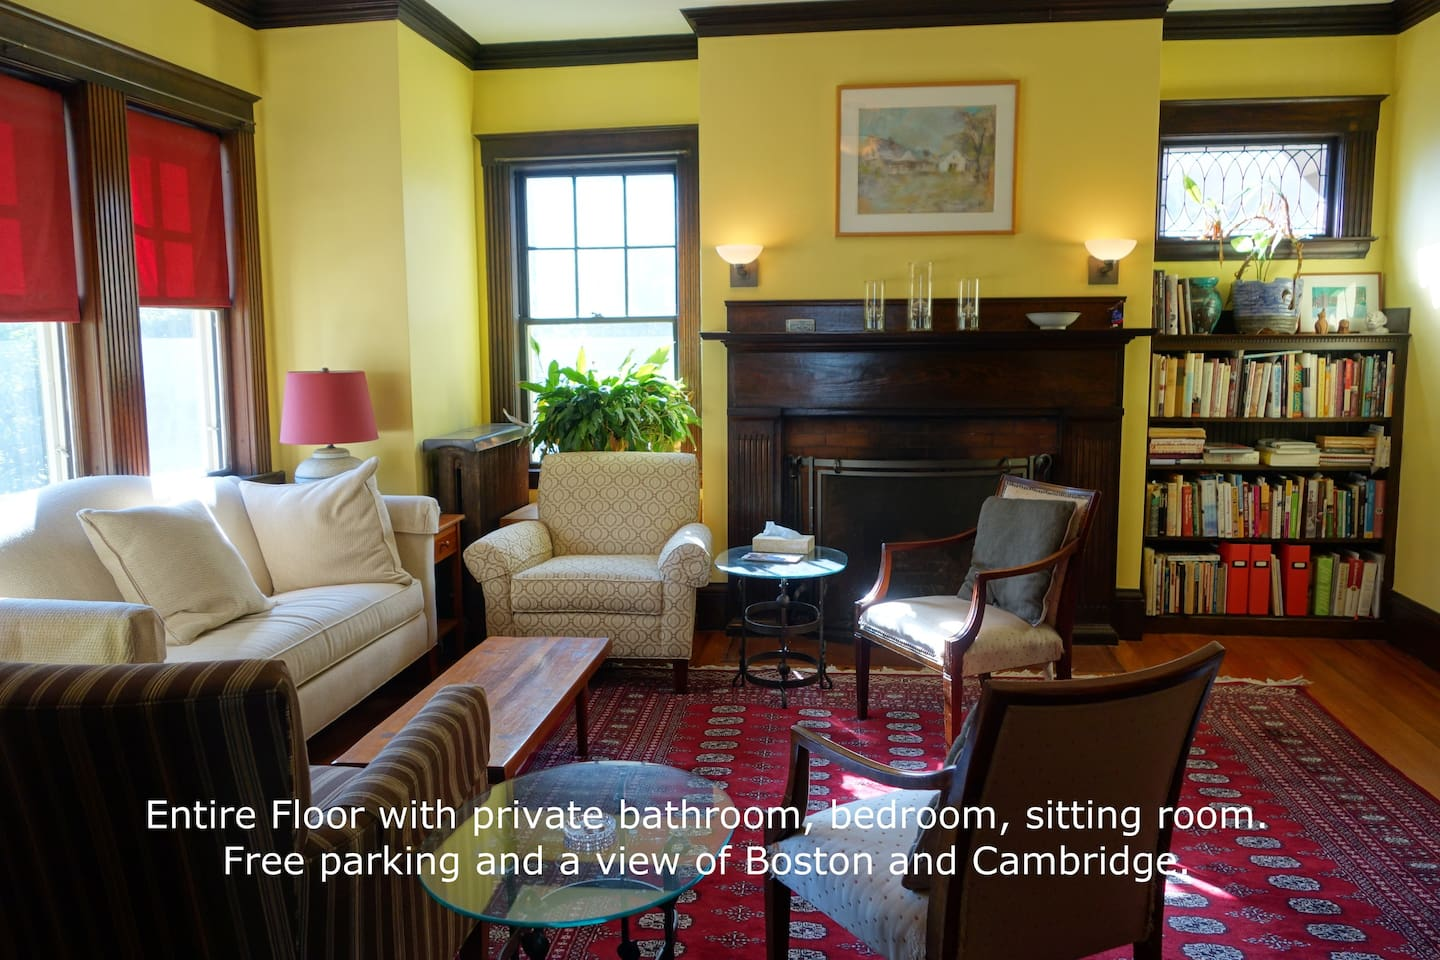 Our Living Room- A comfortable place to read a book or knit as some guests have done